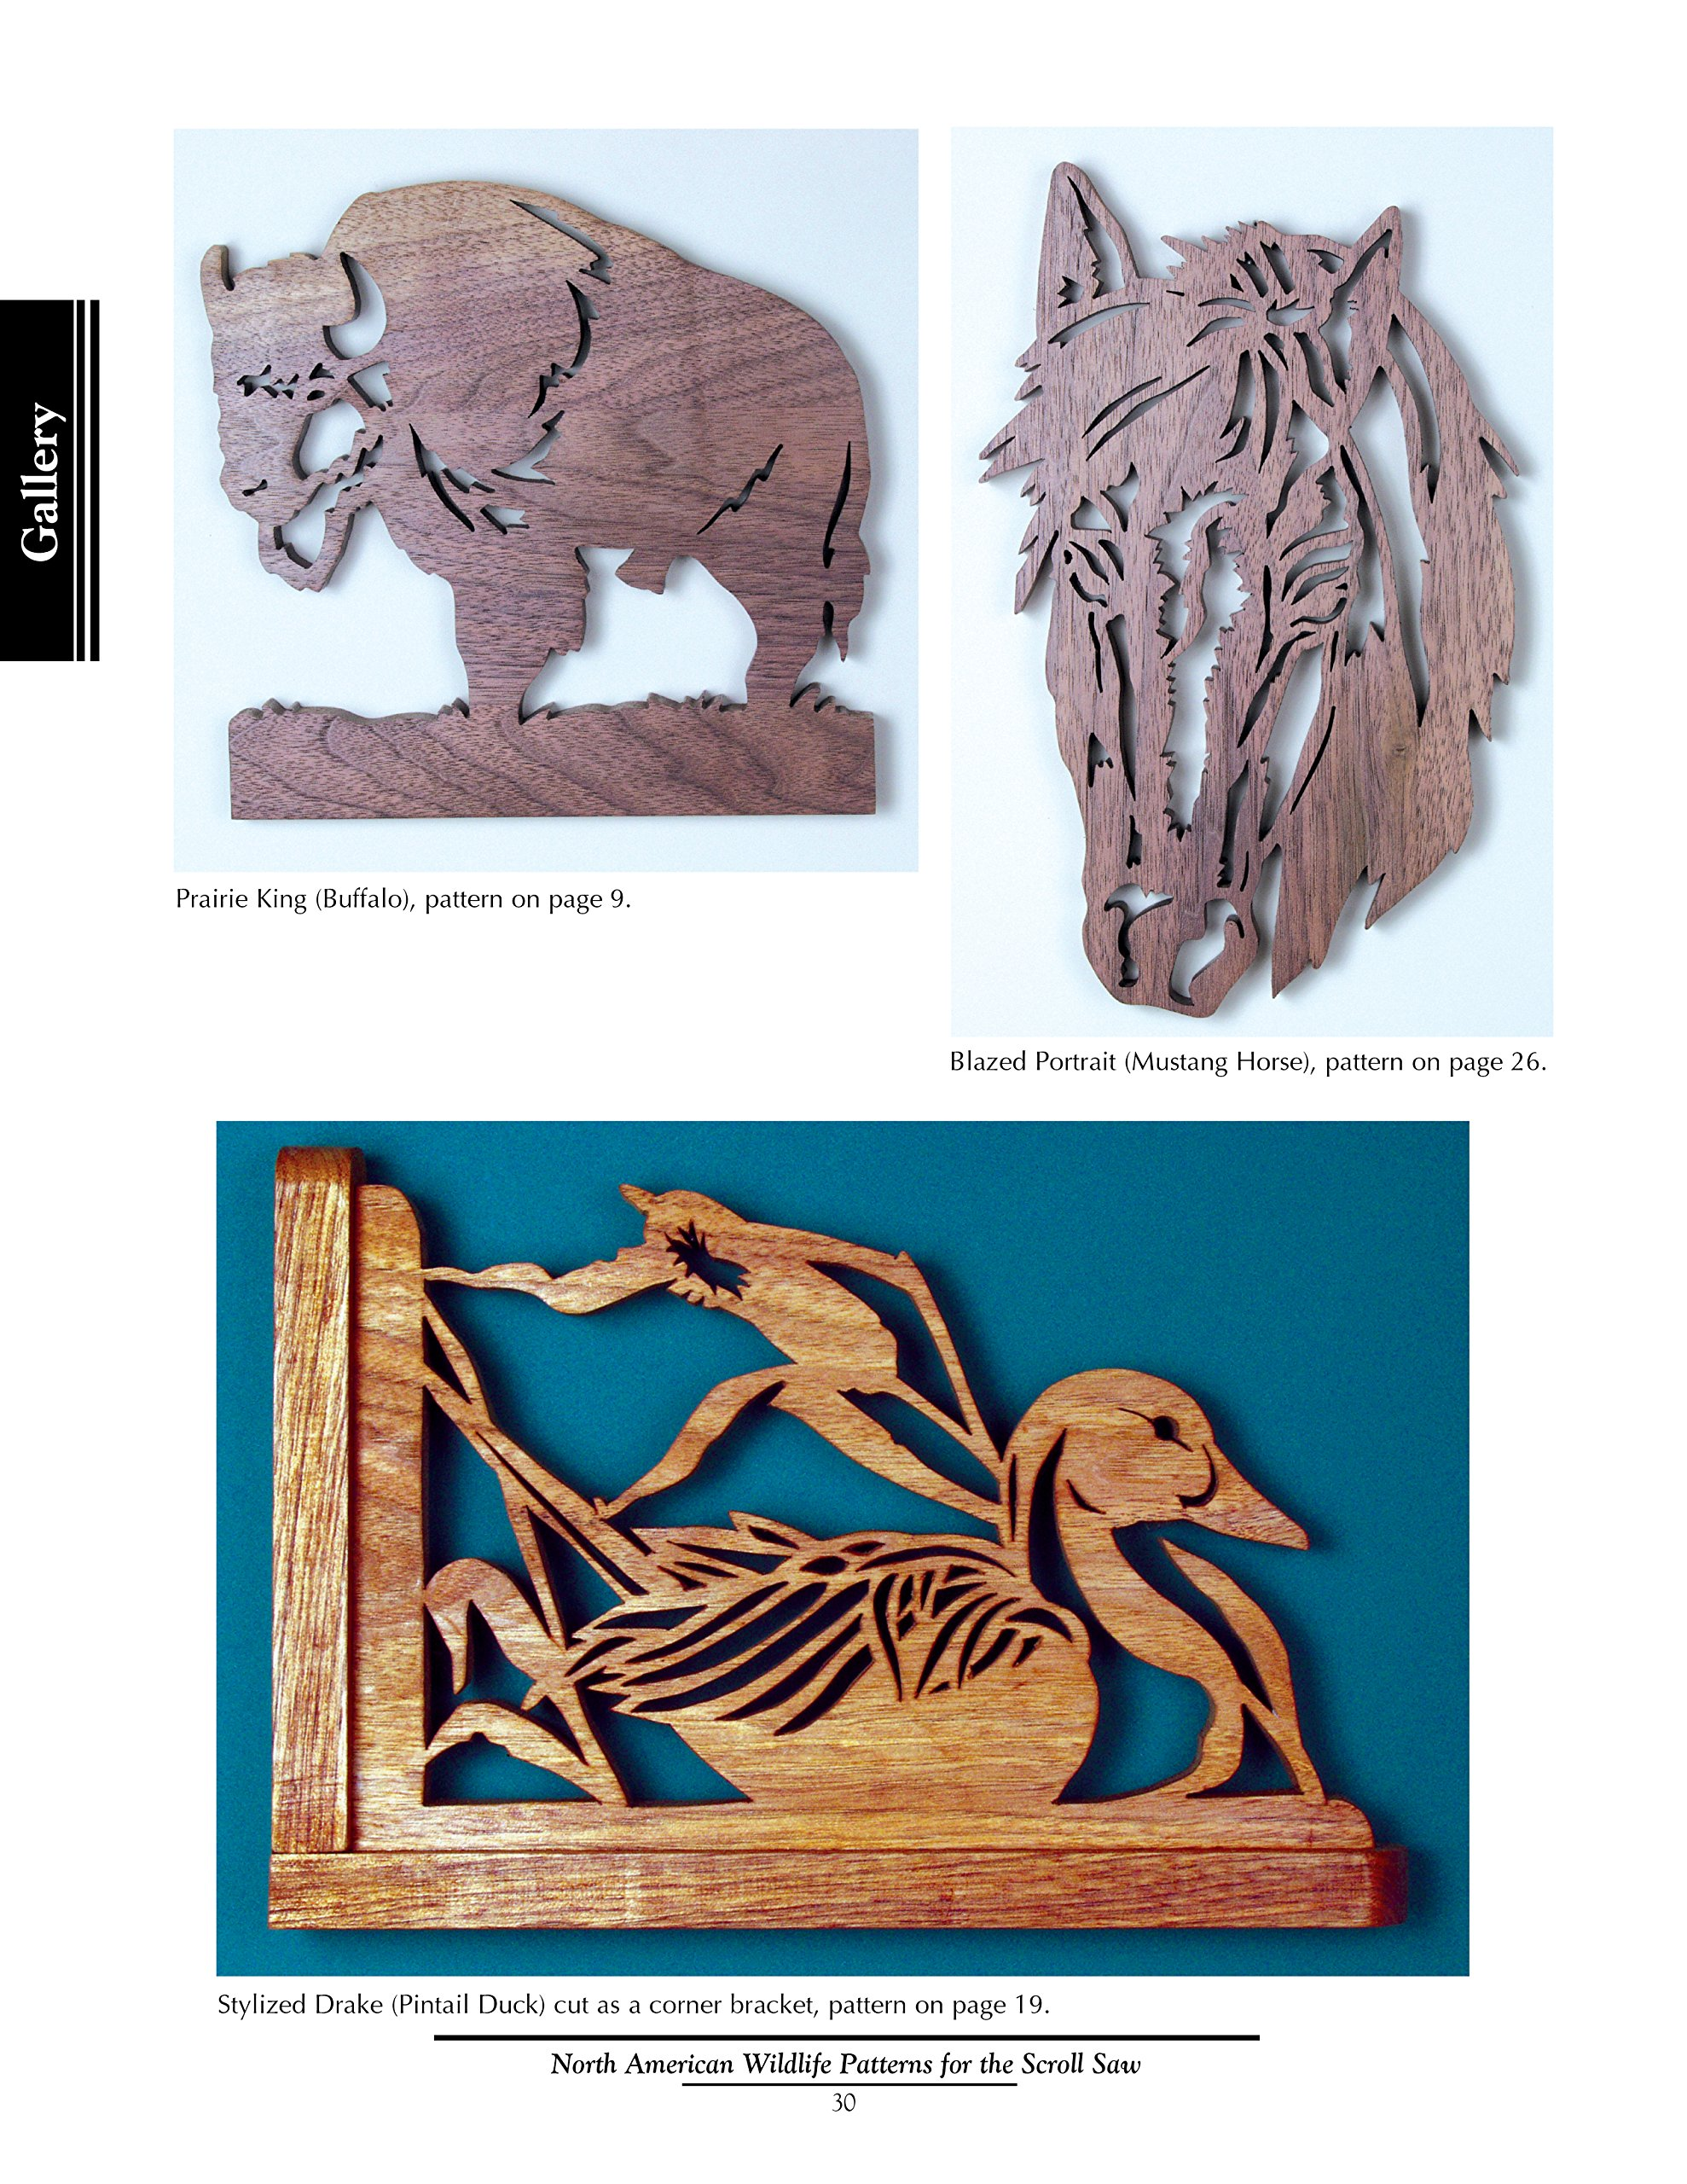 North american wildlife patterns for the scroll saw 61 captivating north american wildlife patterns for the scroll saw 61 captivating designs for moose bear eagles deer and more fox chapel publishing ready to cut fandeluxe Images